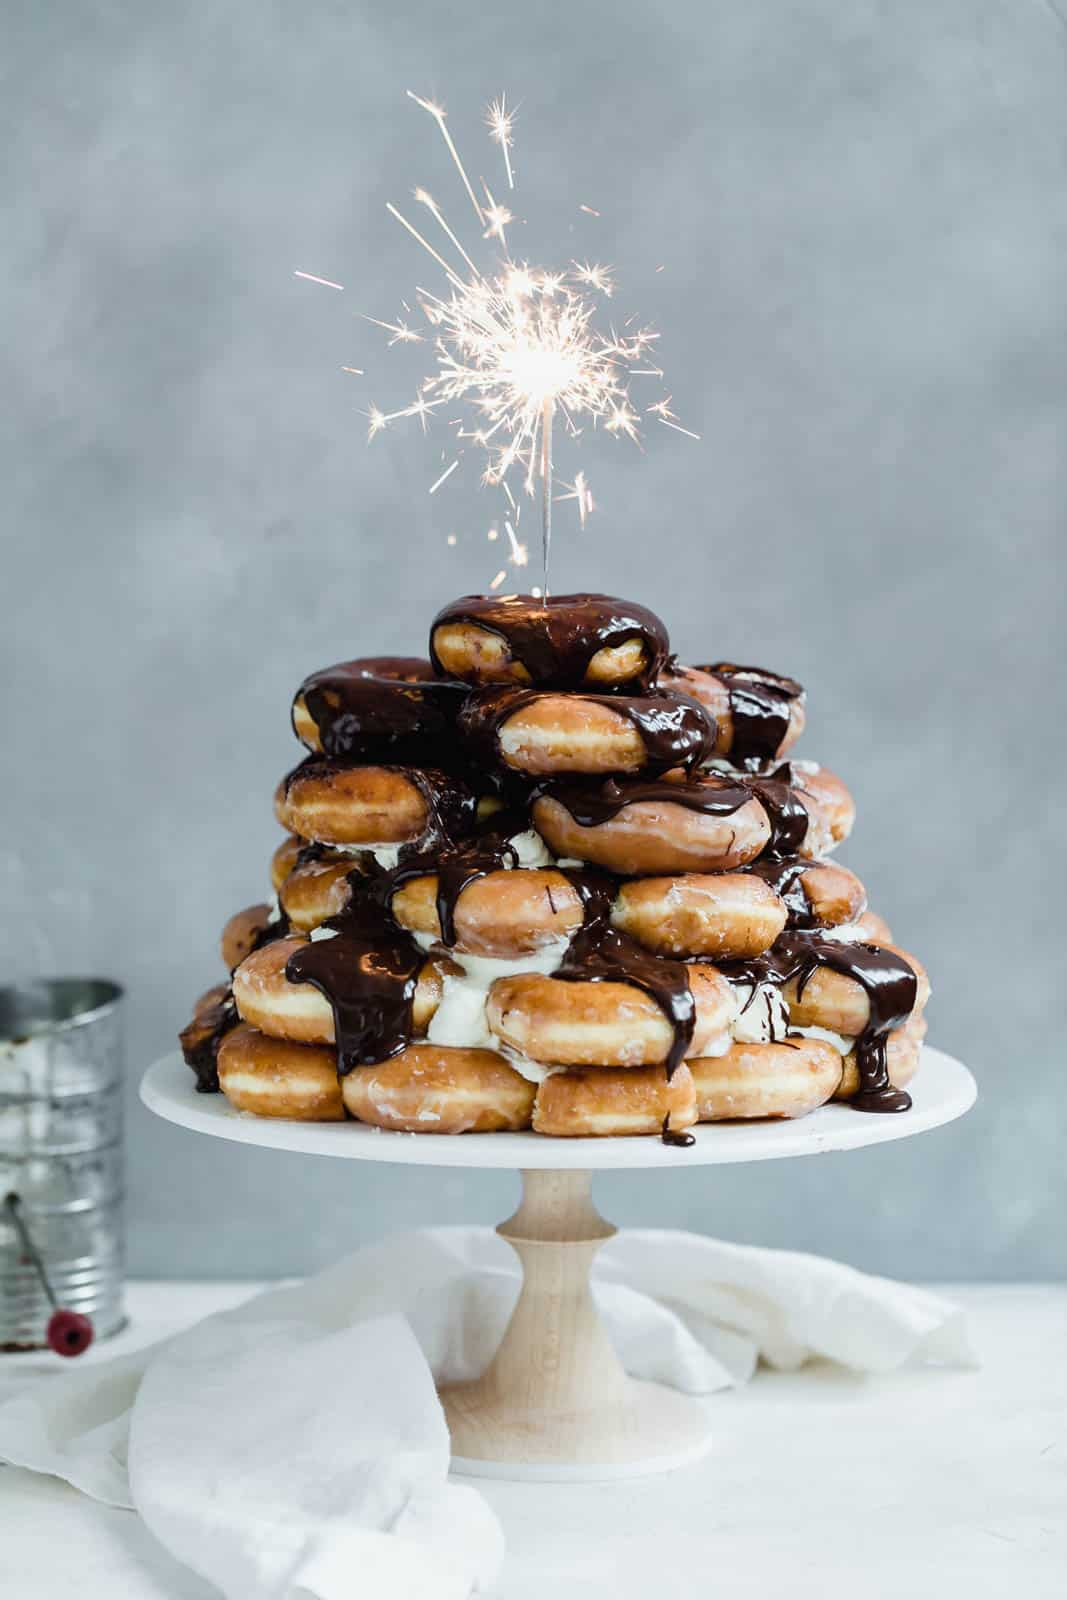 Towering Krispy Kreme donut cake smothered in chocolate frosting